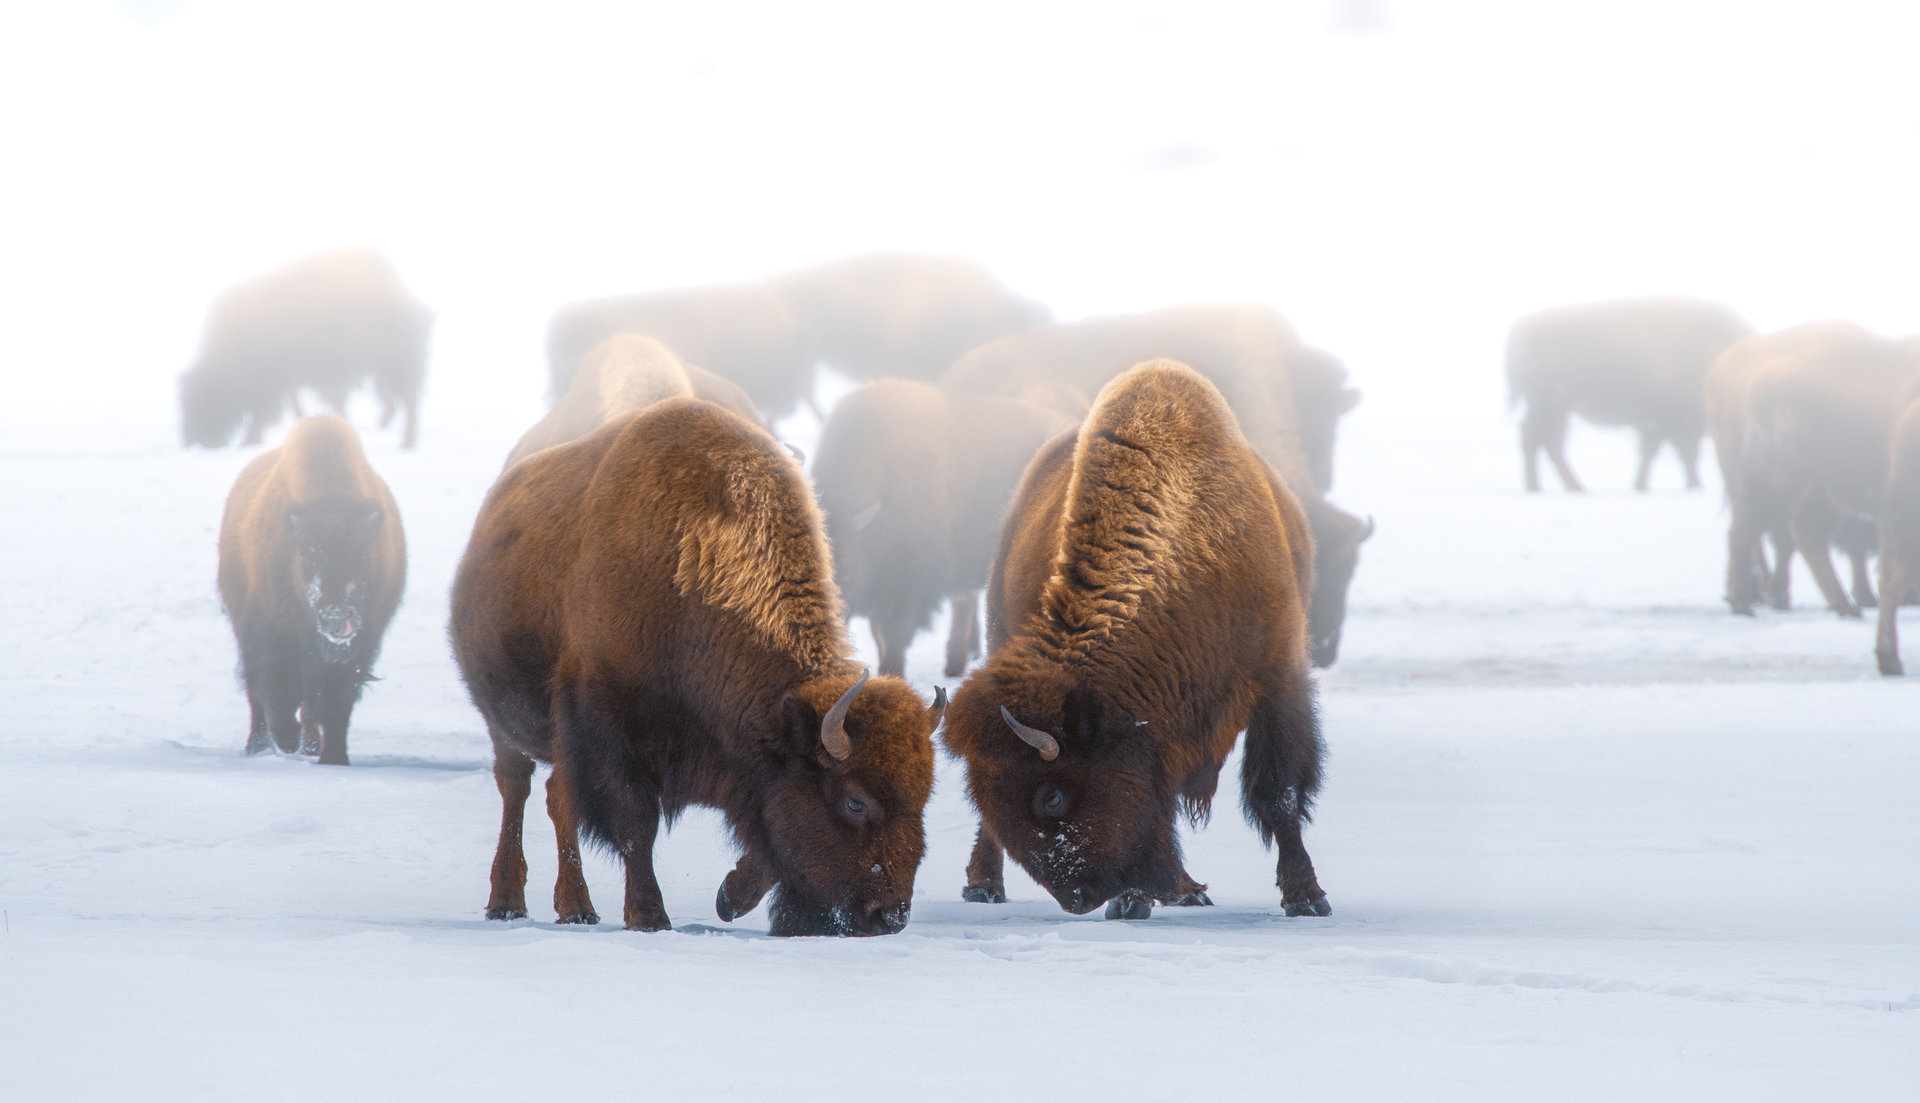 American bisons  in Yellowstone National Park | Author Жоро  - HITTHEROAD | PHOTO FORUM